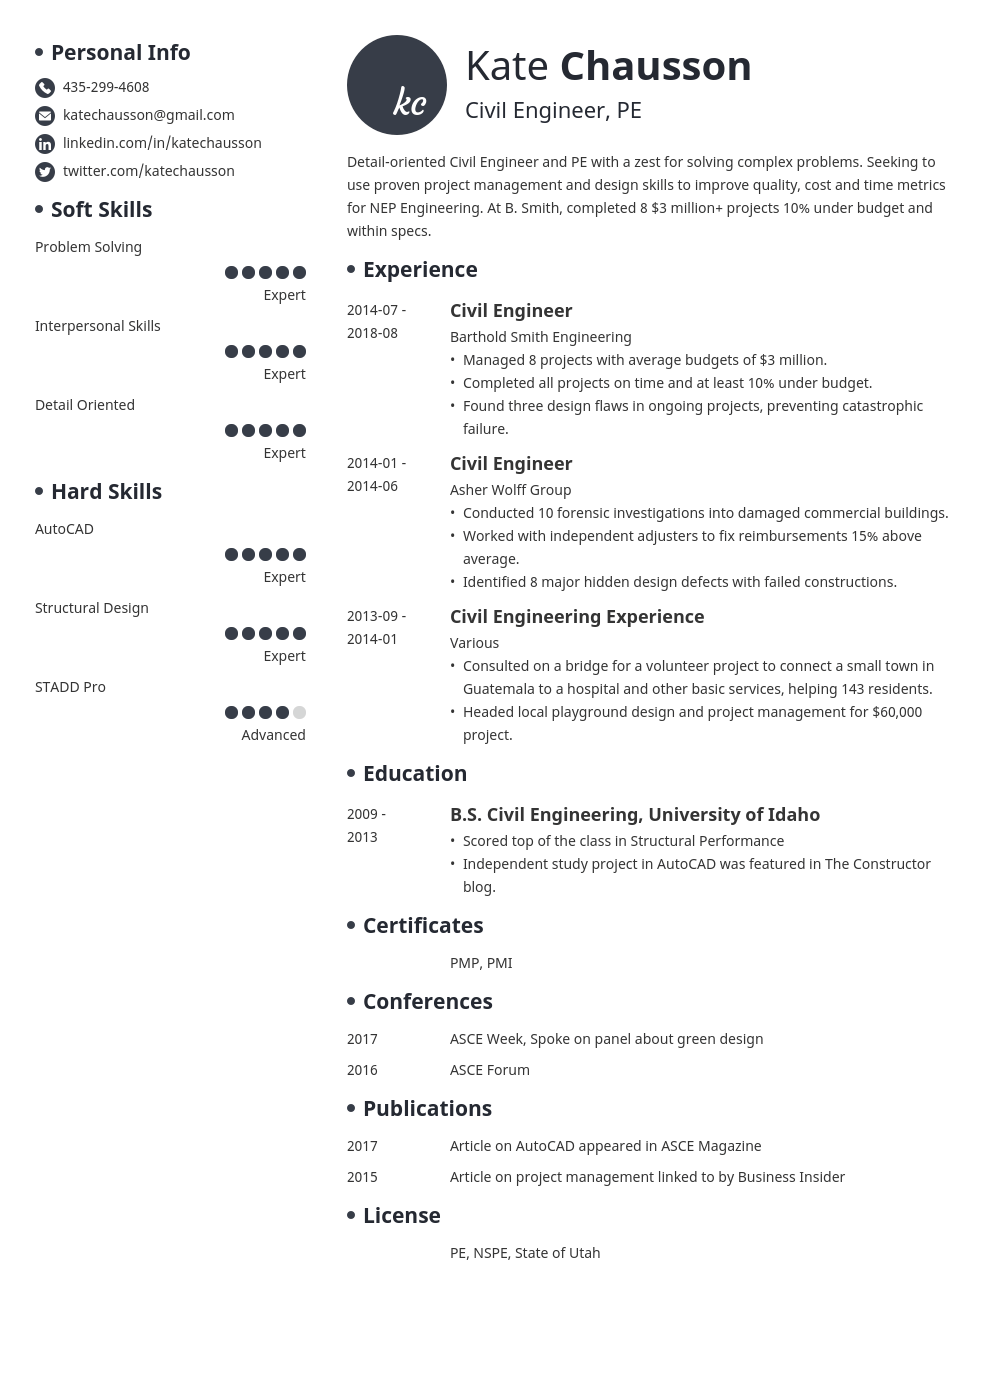 Civil Engineer Resume Examples Templates, Format